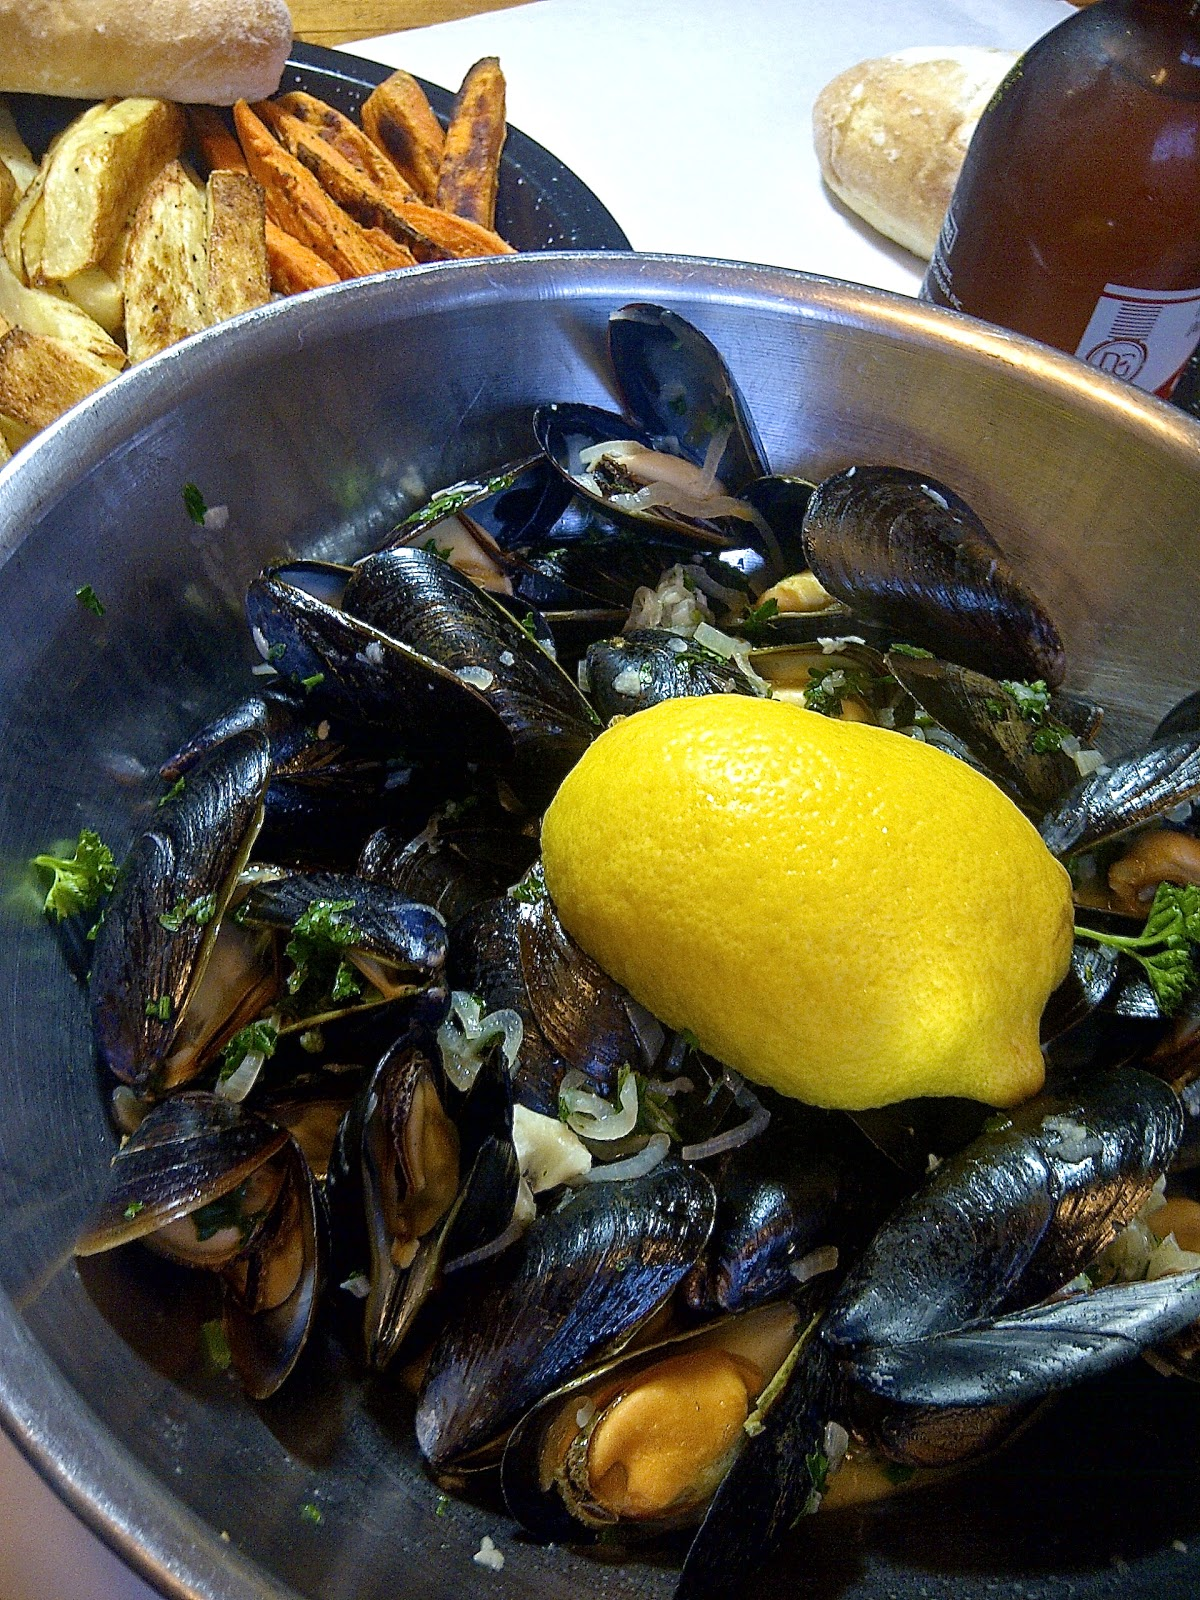 Super Easy To Make - Lemony Mussels & Oven Fries - www.soliloquyoffood.com